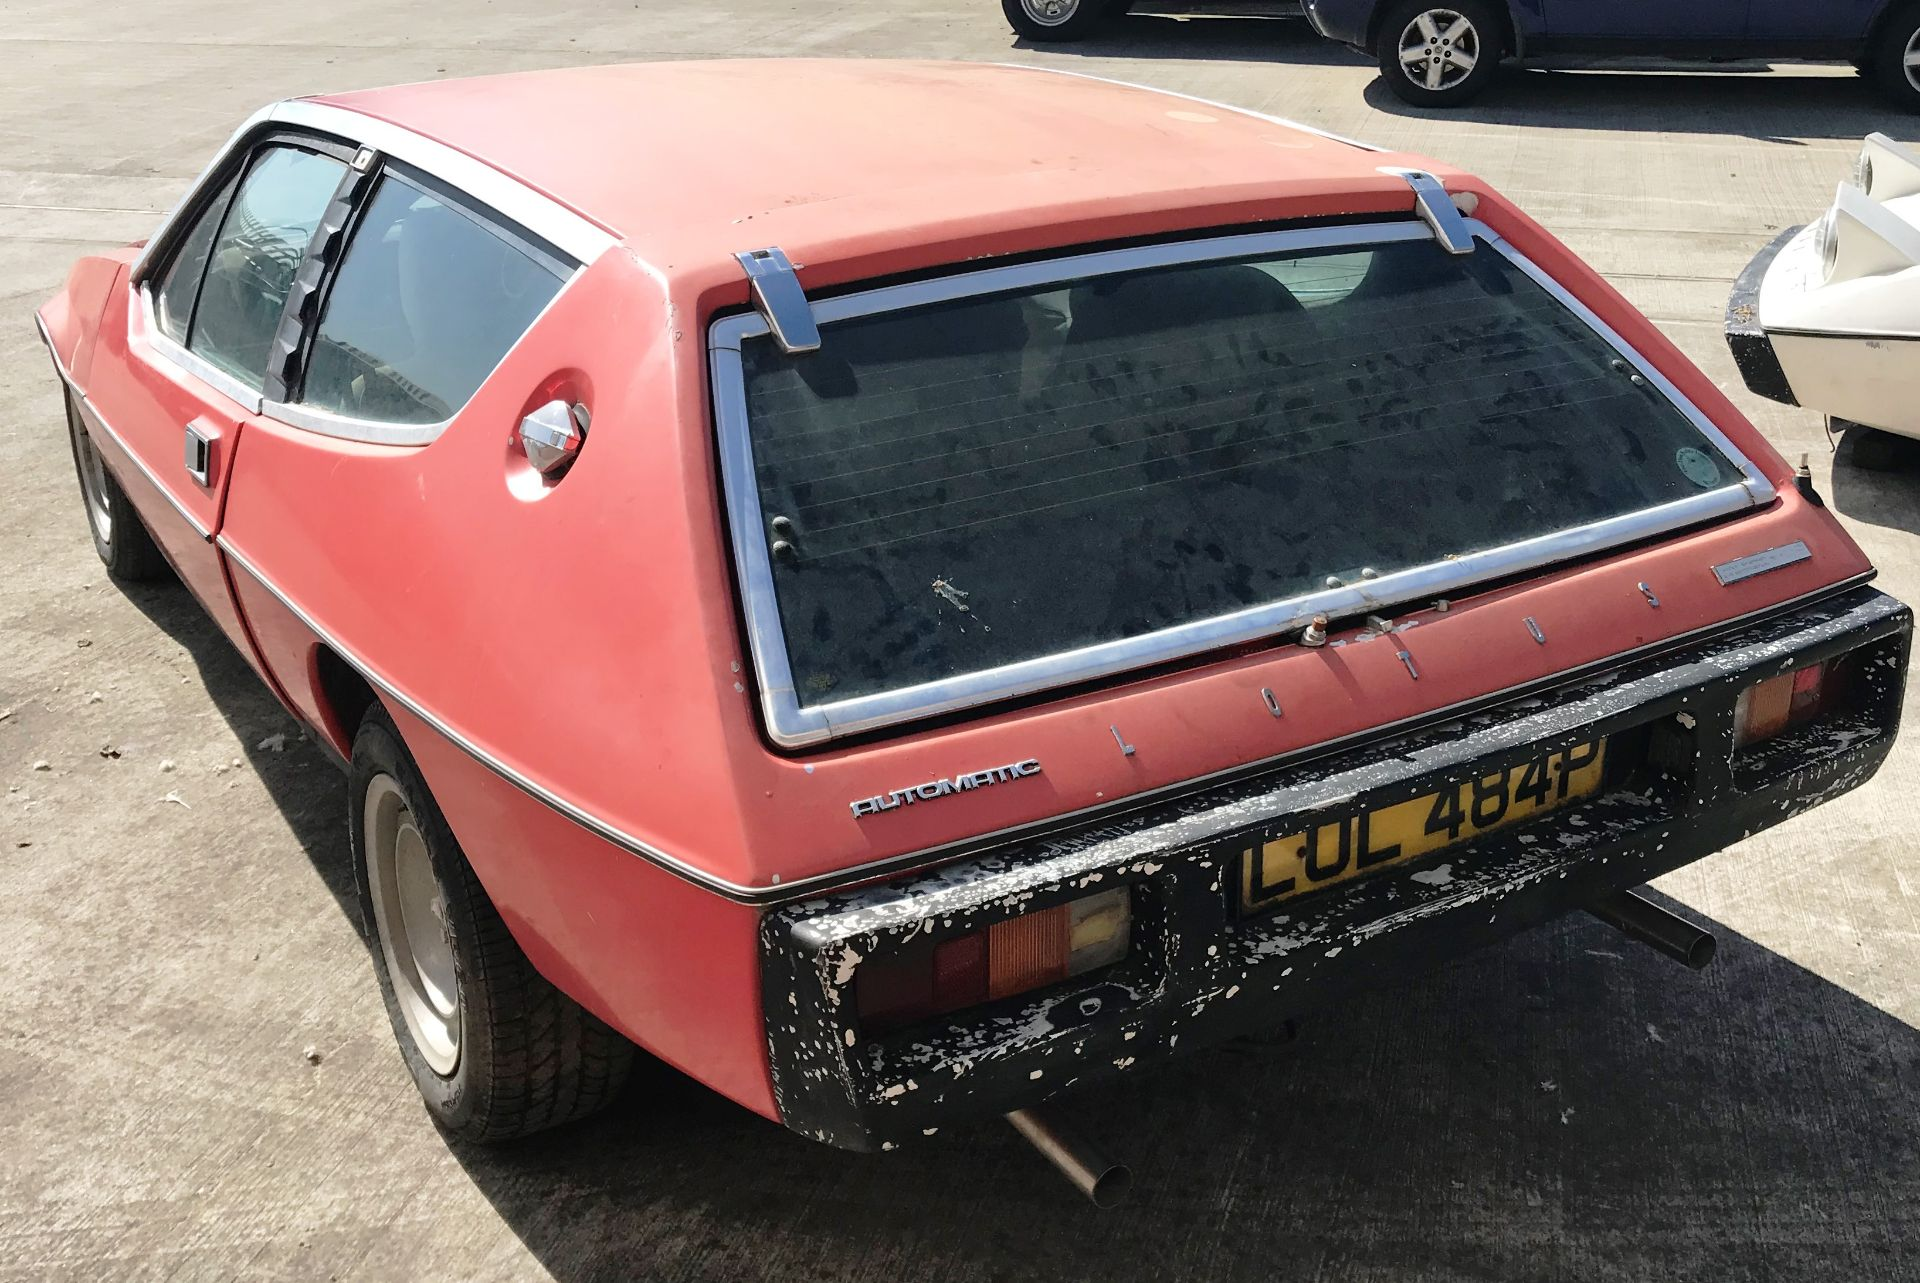 BARN FIND - IN NEED OF TOTAL RESTORATION LOTUS ELITE TWO DOOR SALOON (1973cc) - AUTOMATIC - petrol - Image 11 of 14